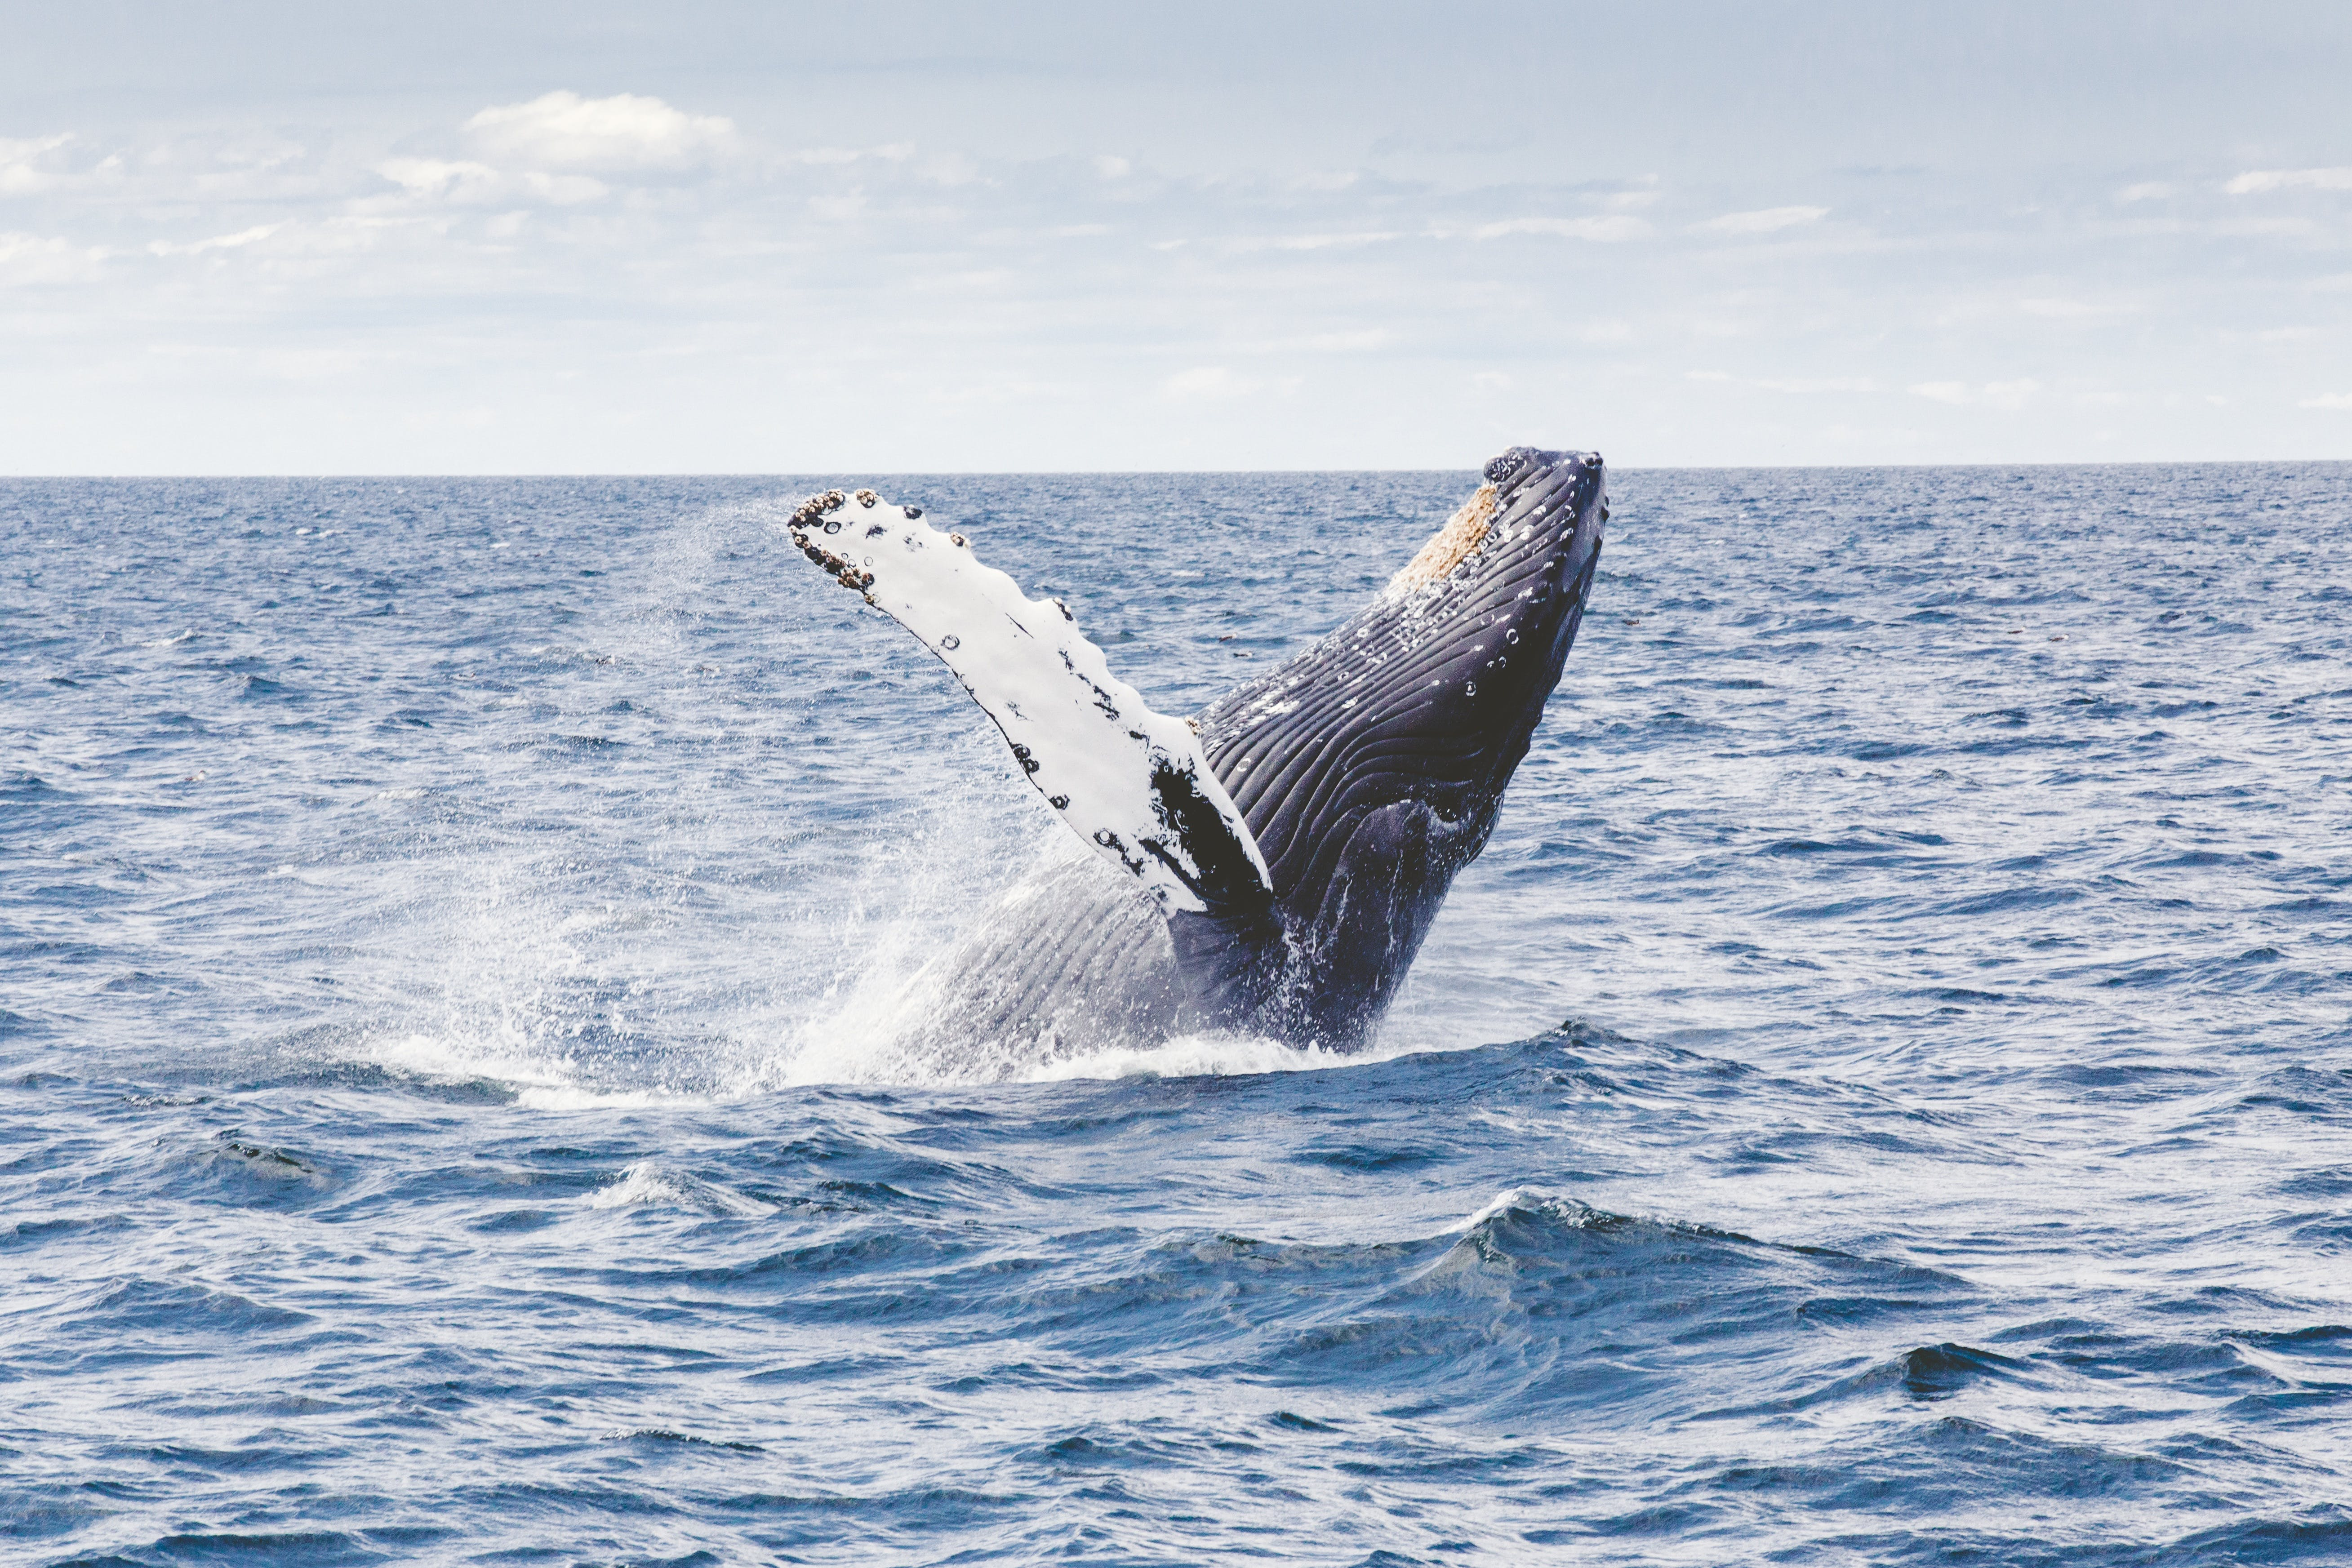 Whale watching, Gray whale, Blue whale and Humpback whales, dolphins, bodega bay